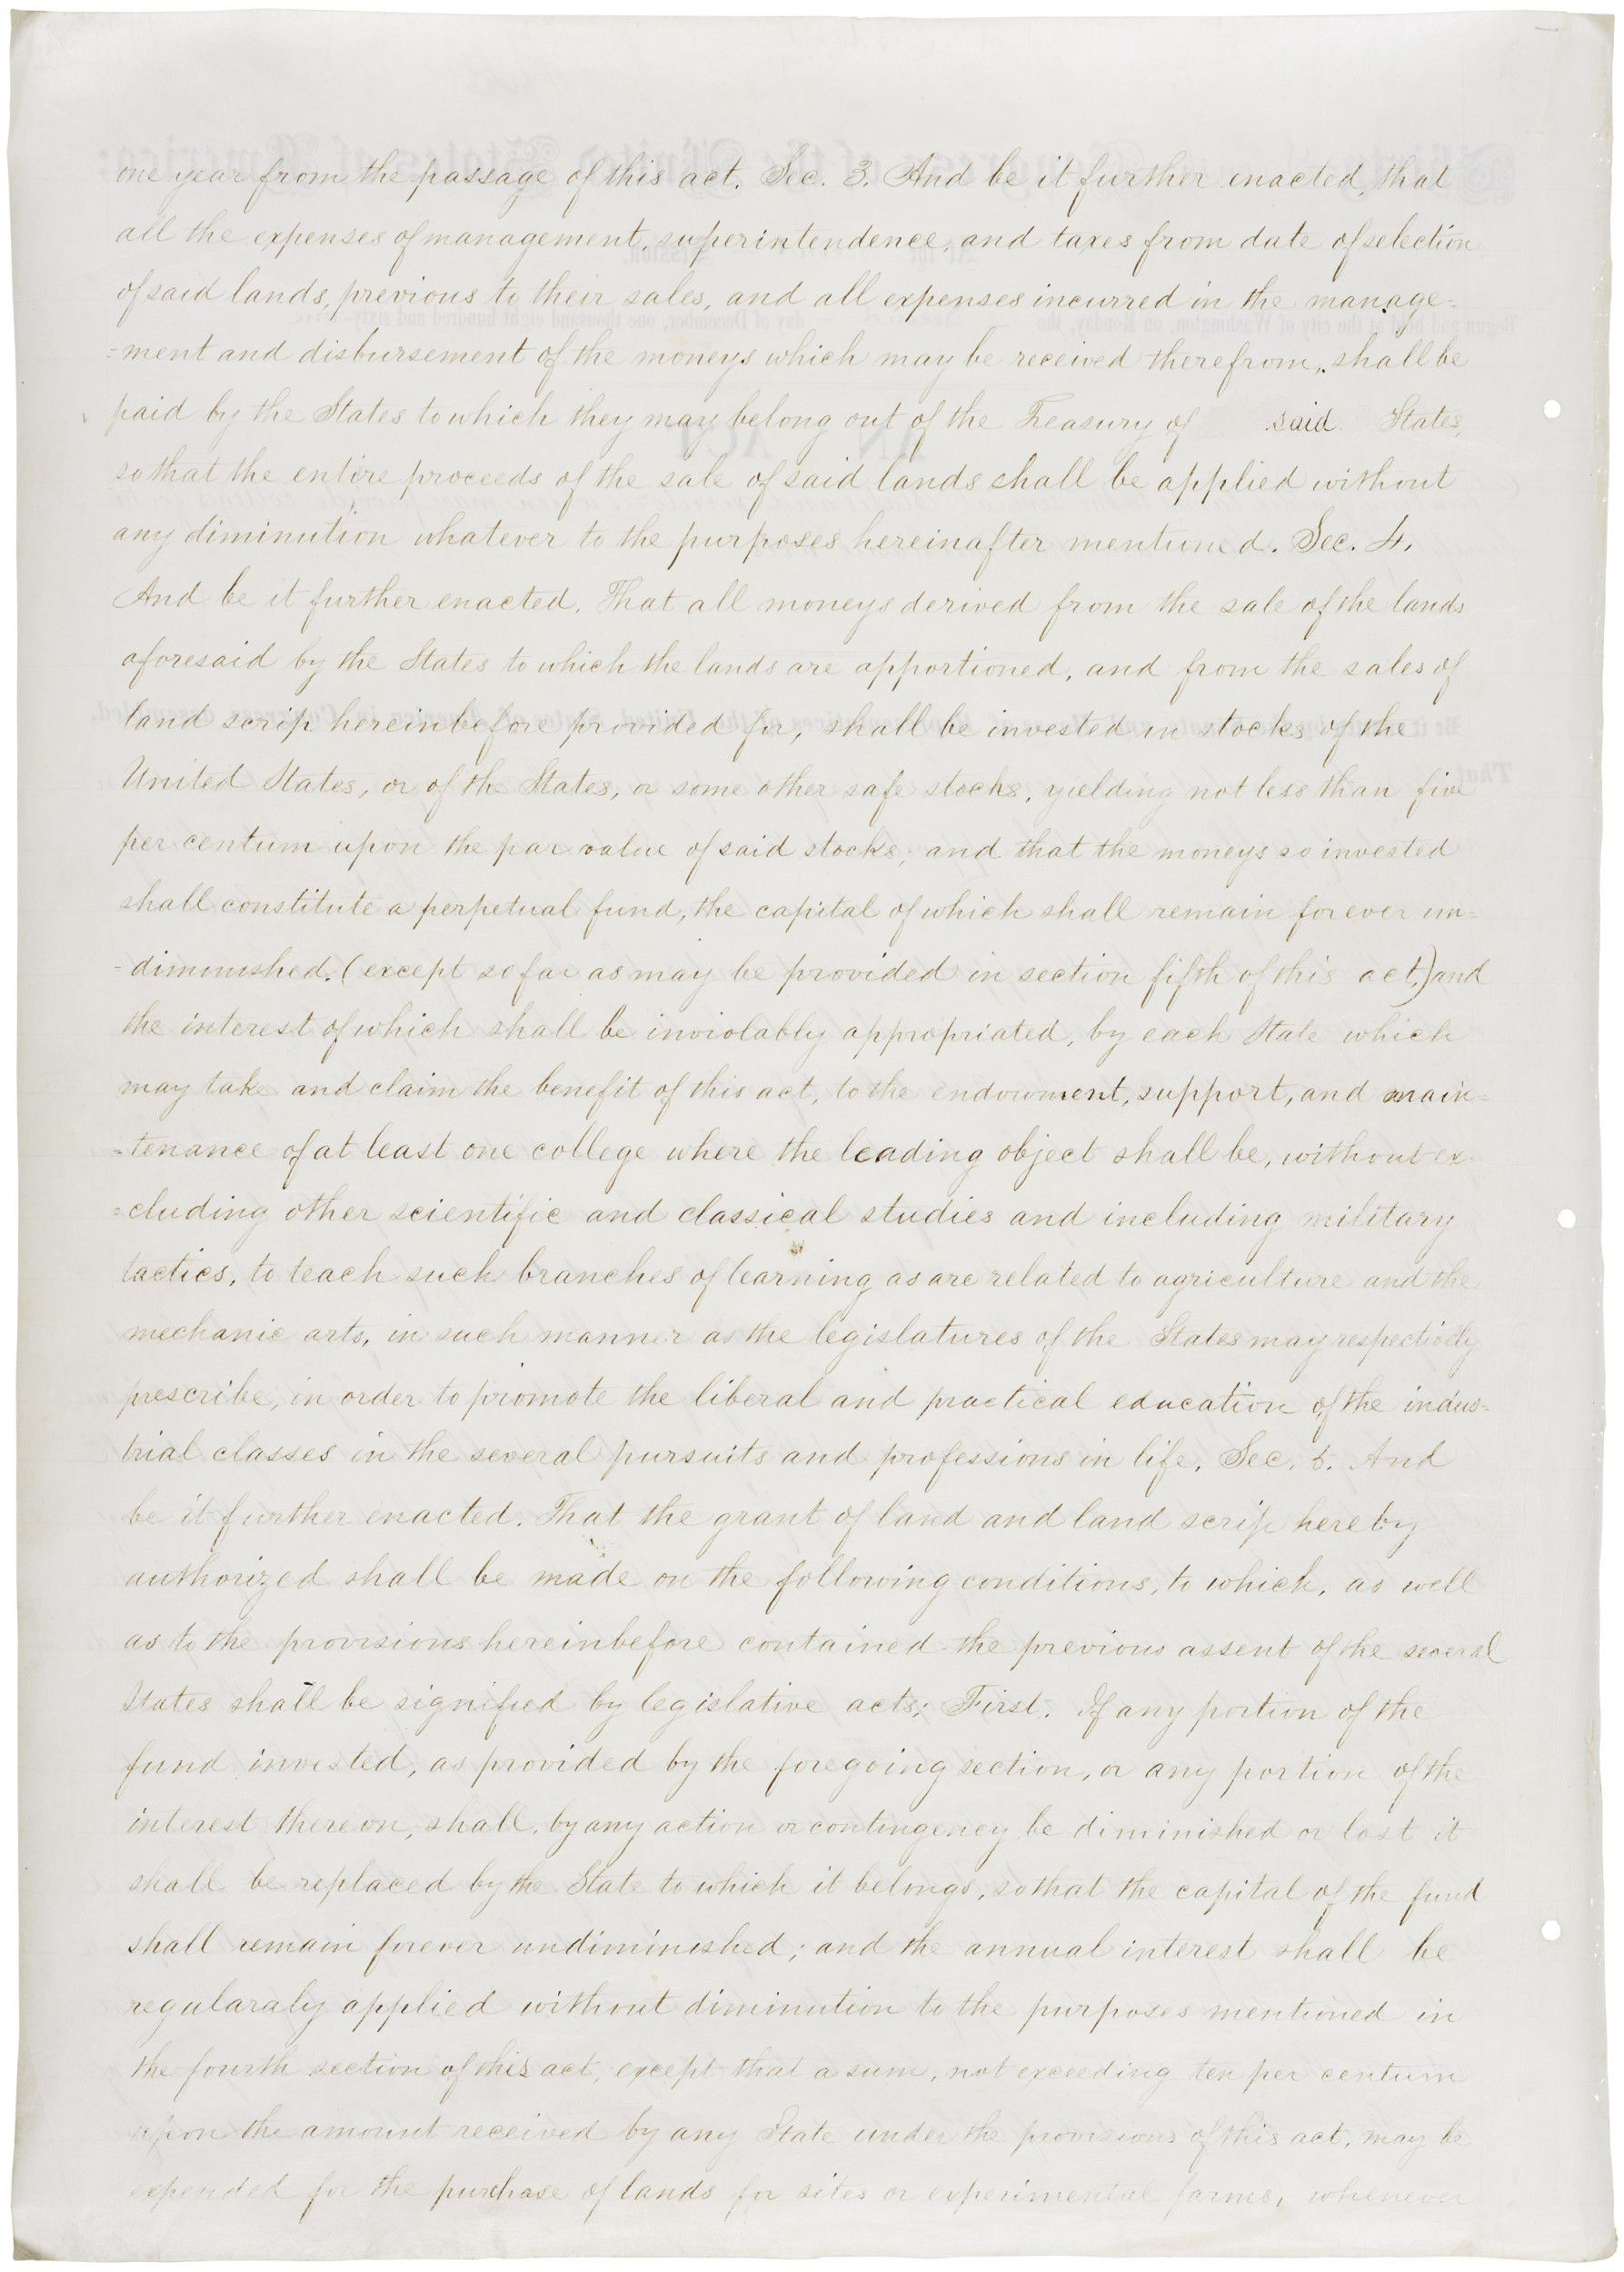 Act of July 2, 1862 (Morrill Act), Public Law 37-108, 12